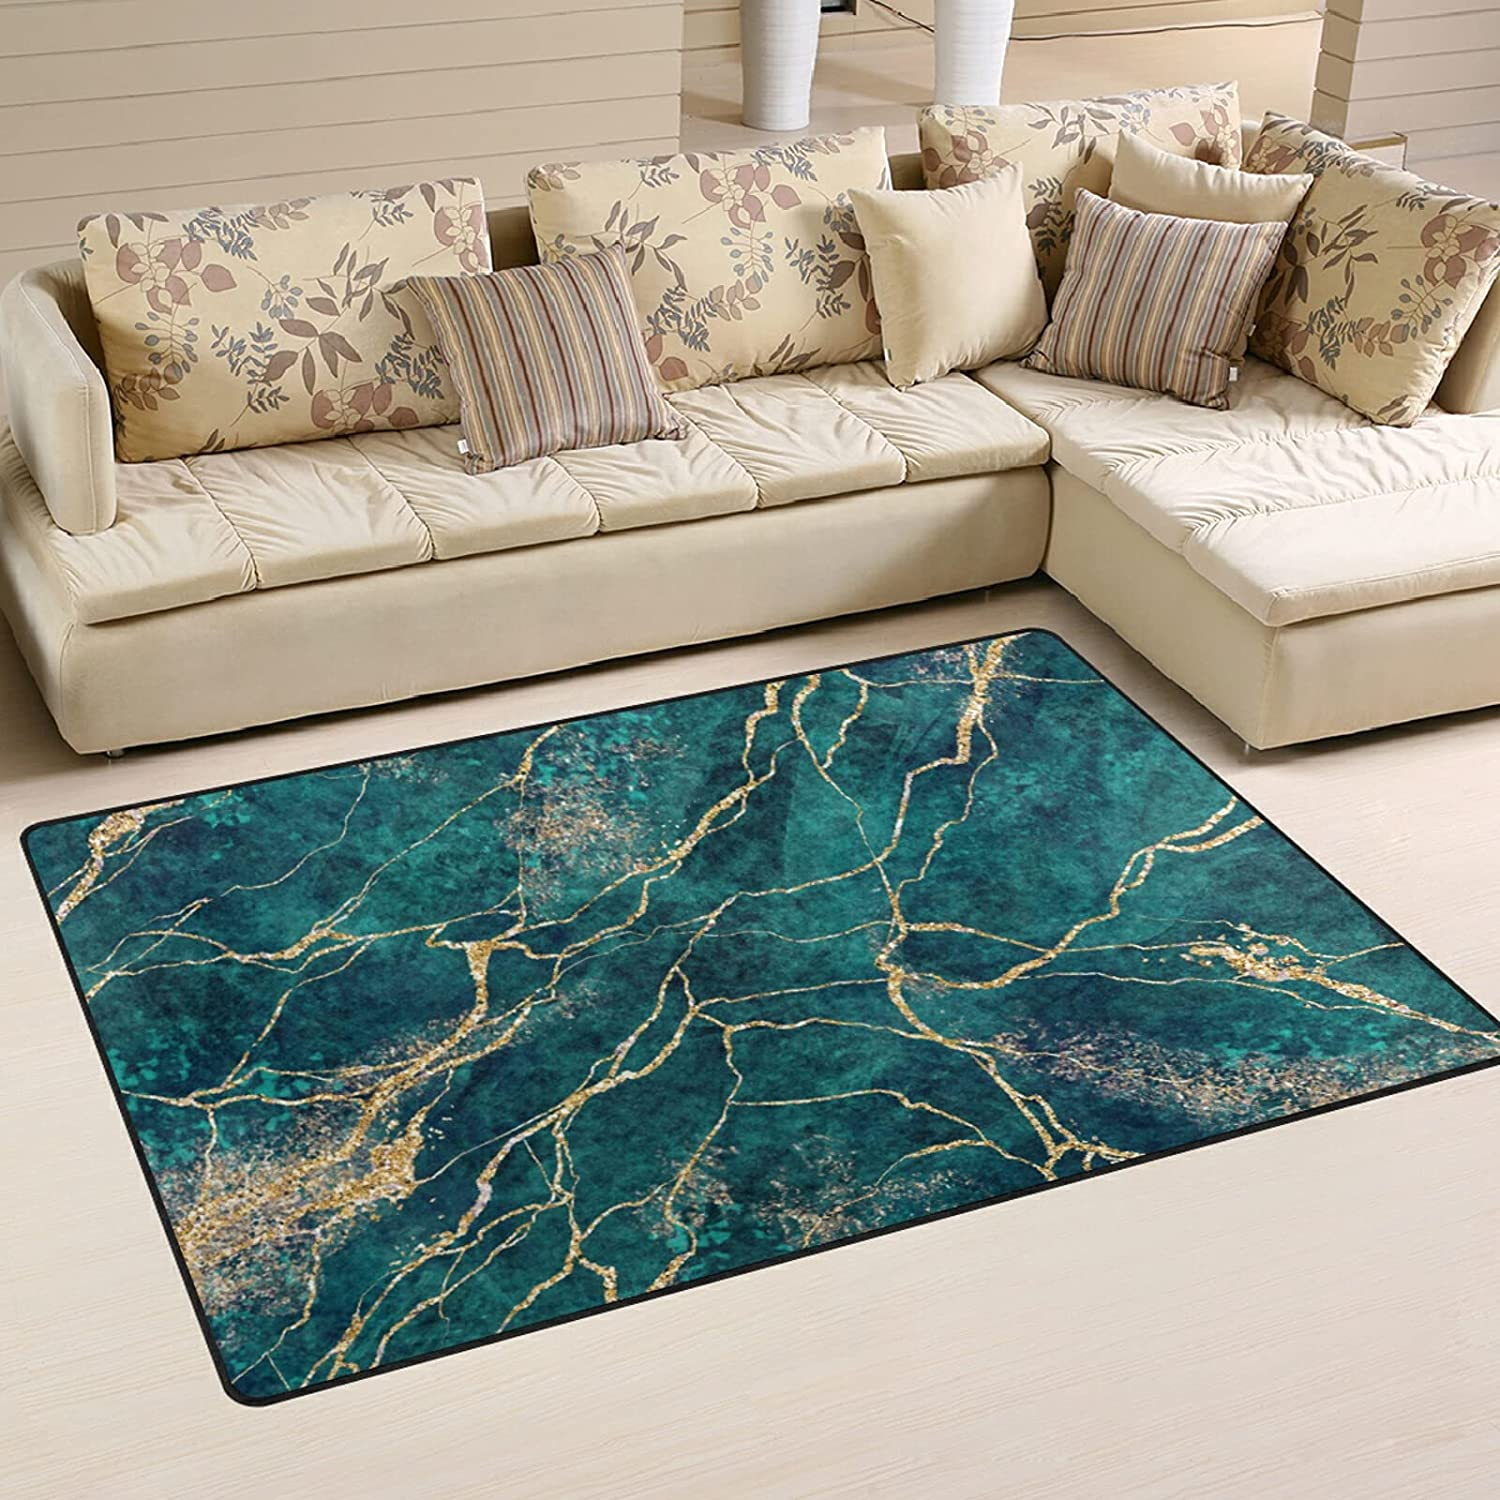 Gold Green Marble Nashville-Davidson Mall Large Soft Area Mat Nursery Playmat Rug f Our shop most popular Rugs